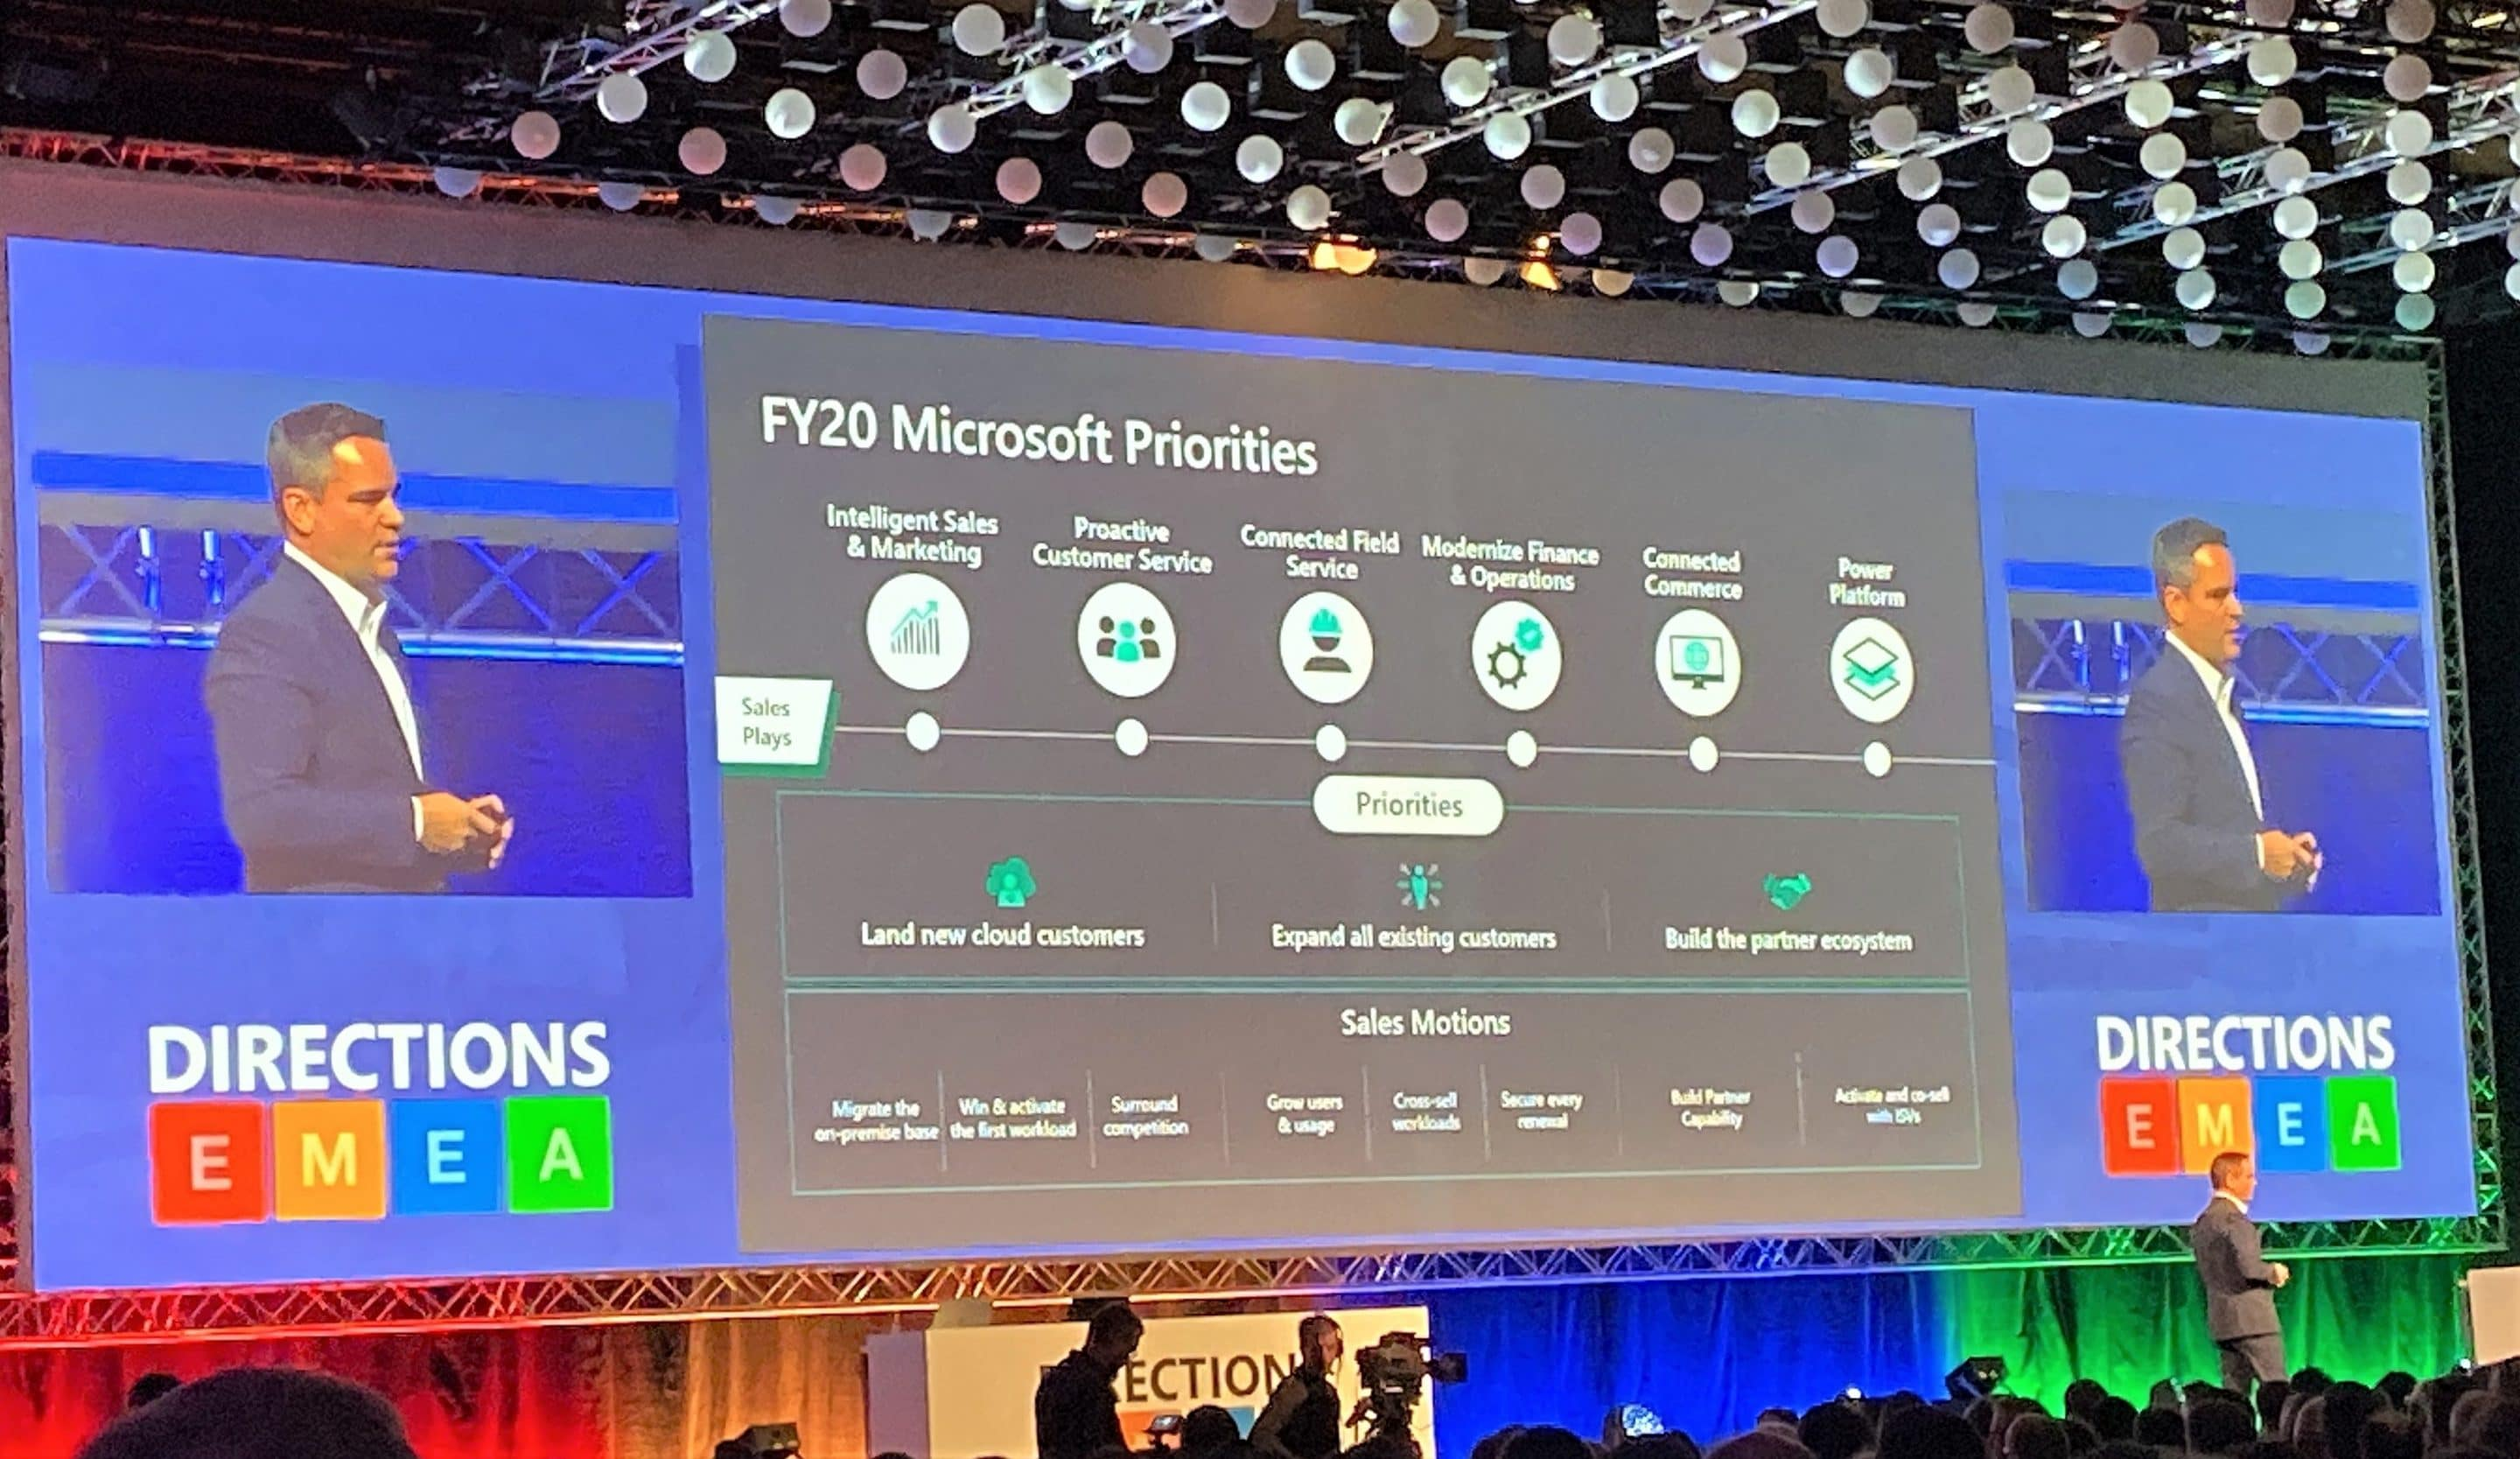 Running through practical improvements to Business Central at Directions EMEA 2019 in Vienna